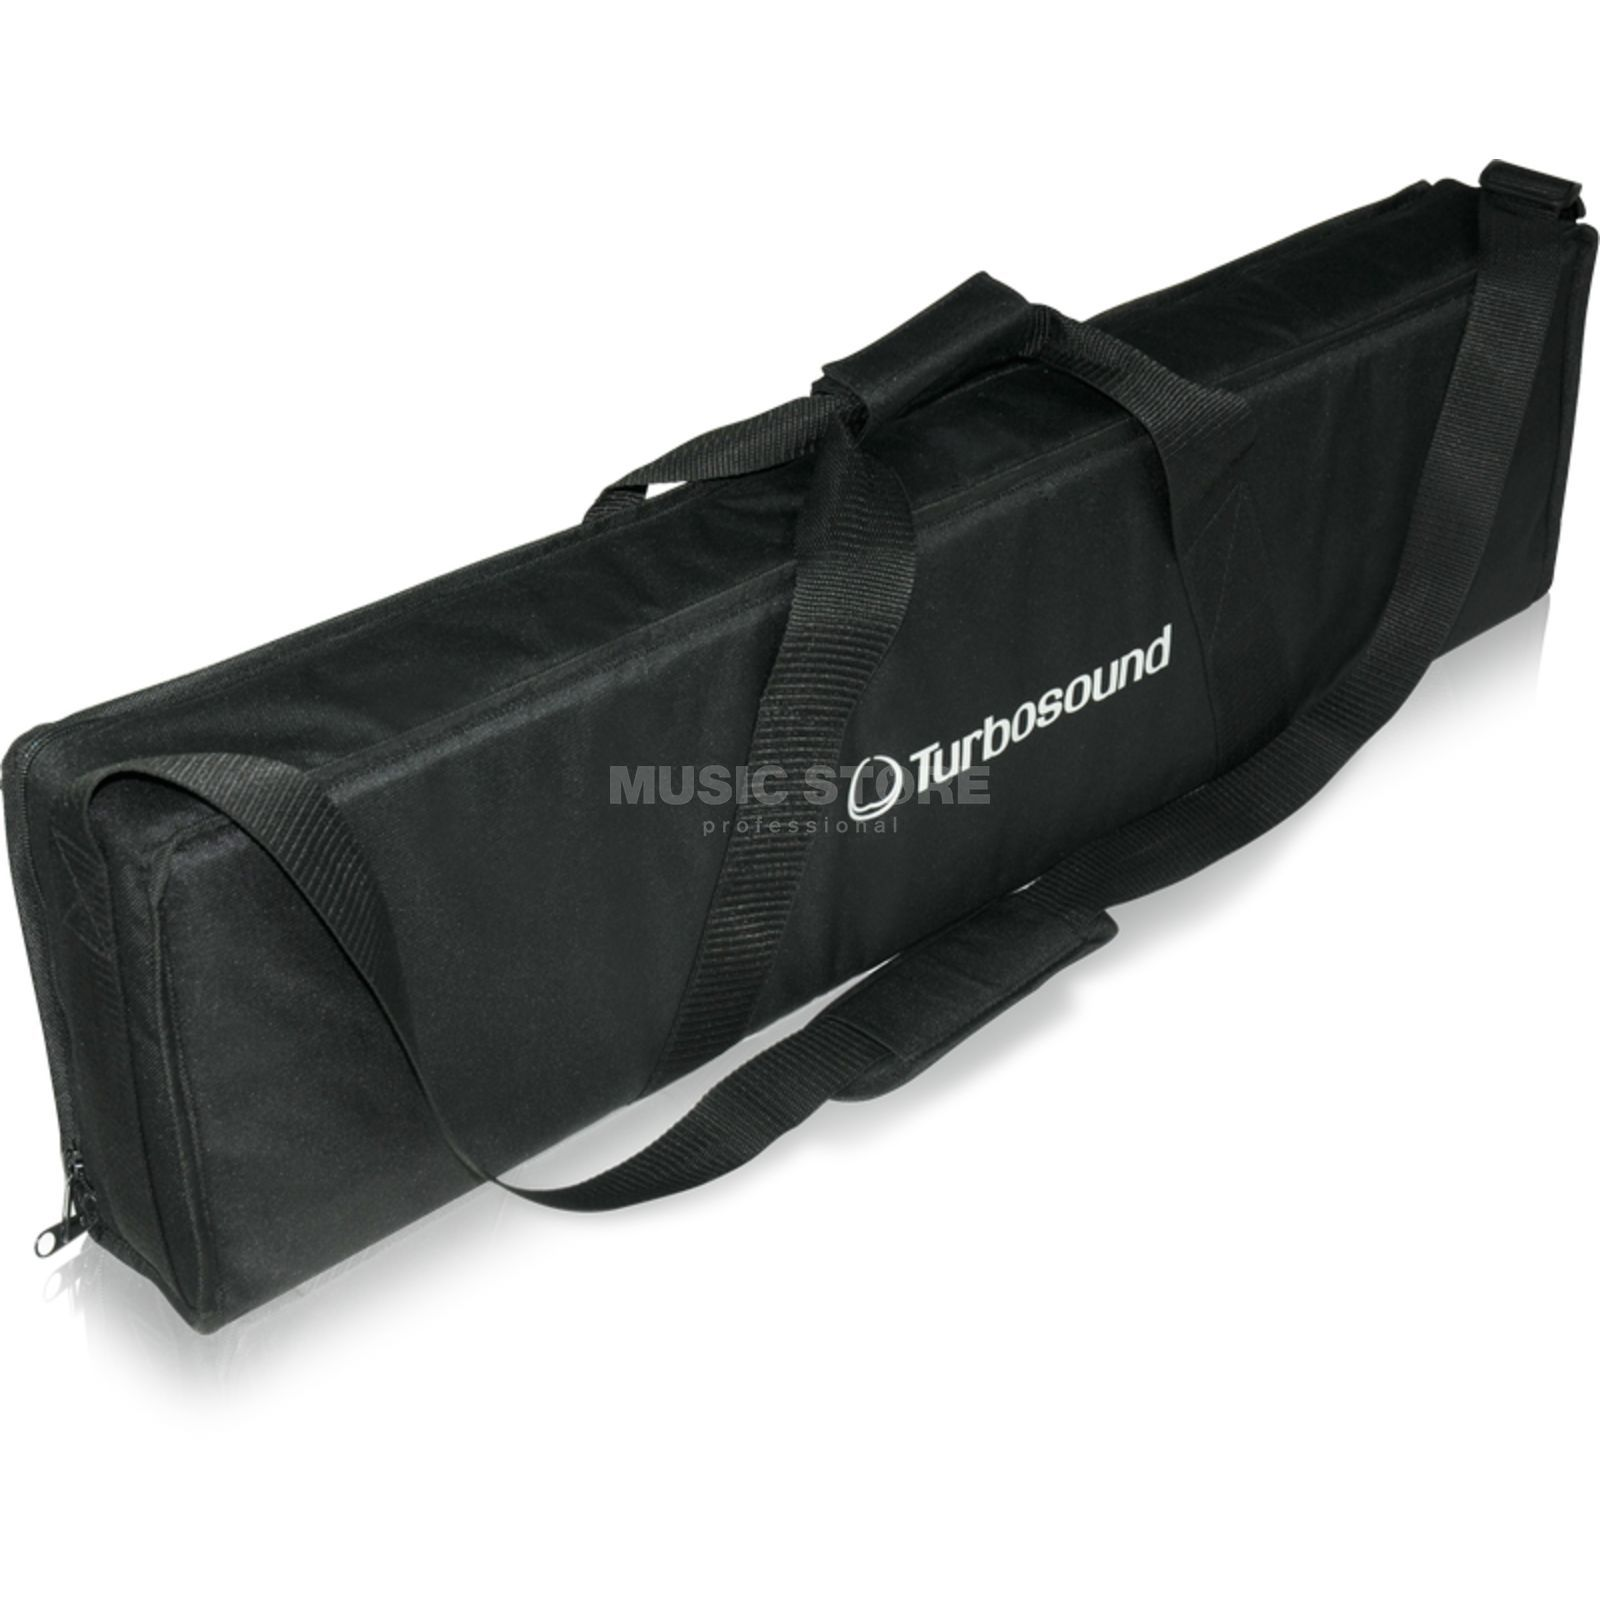 Turbosound iP2000-TB Transport Bag water resistant Produktbild